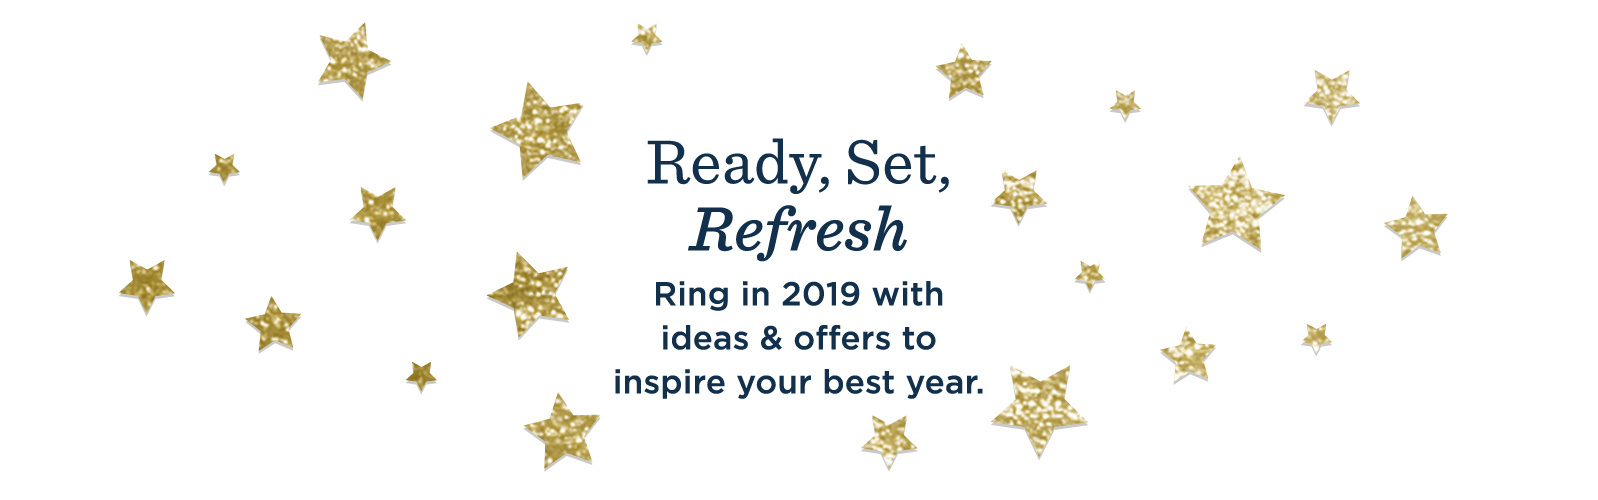 Ready, Set, Refresh! Ring in 2019 with ideas & offers to inspire your best year.